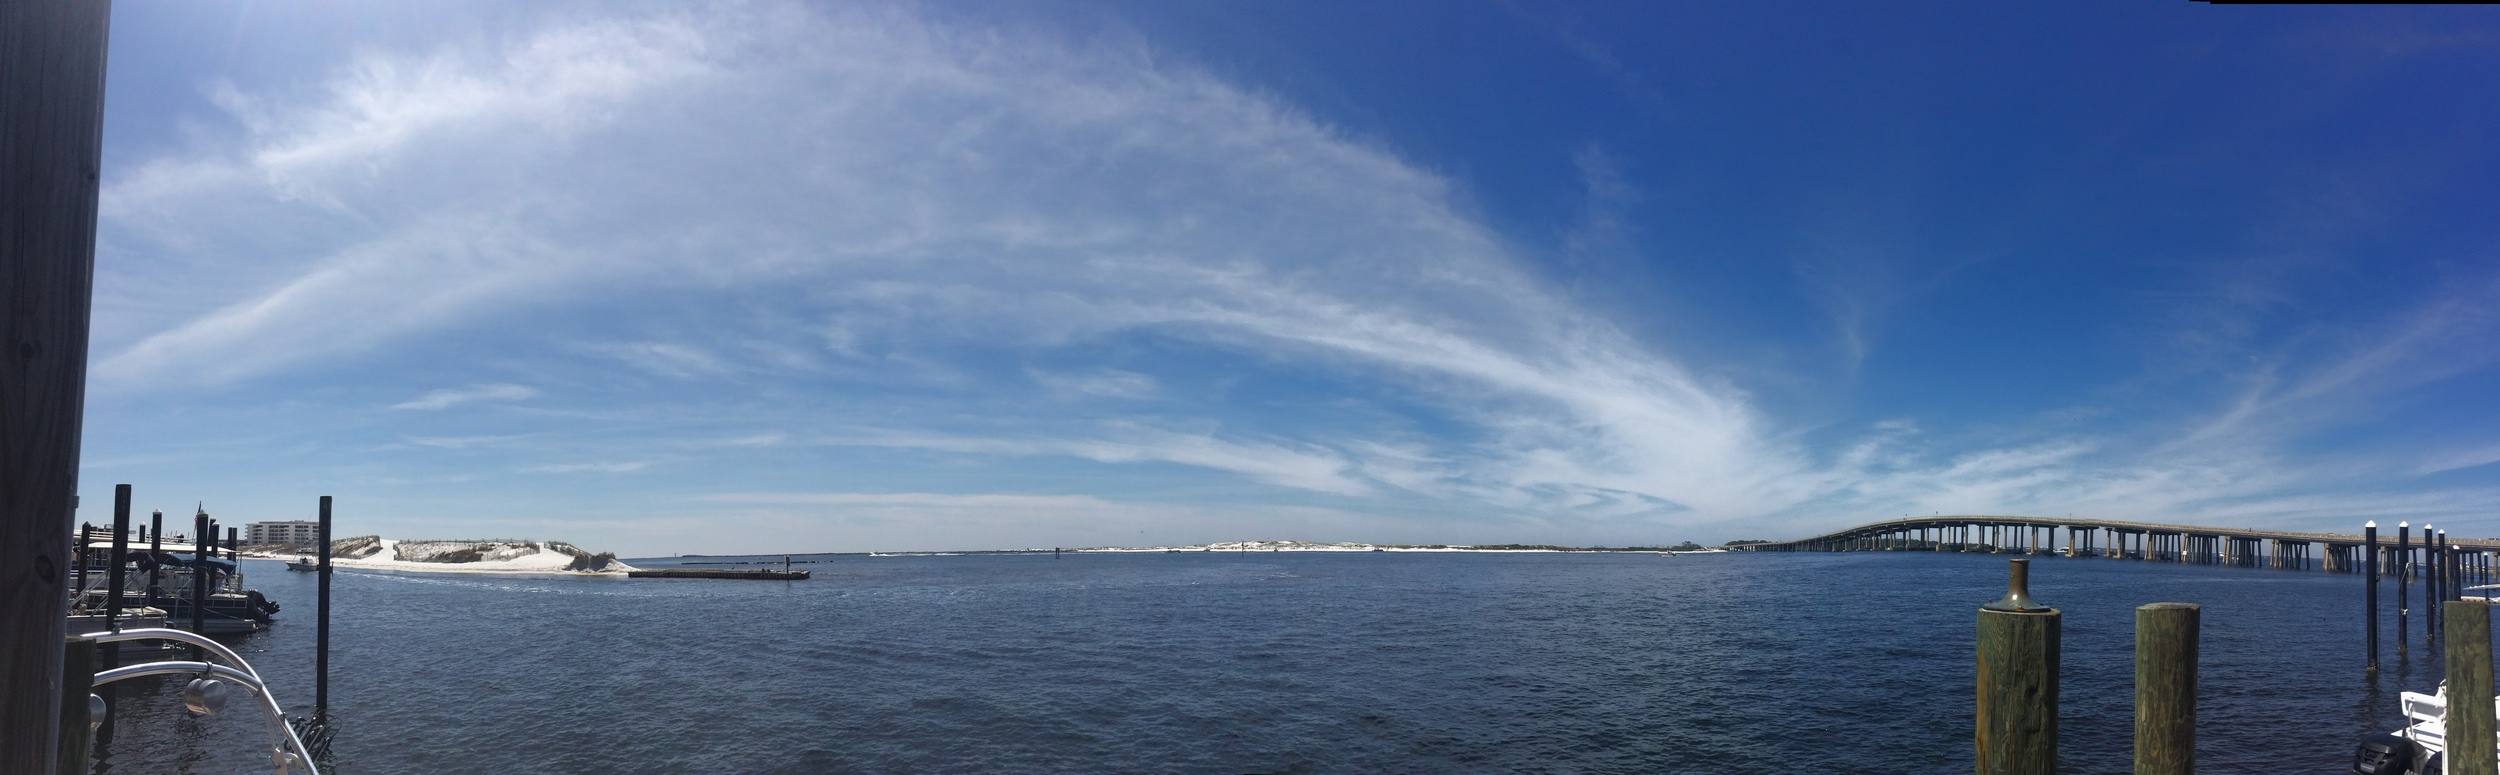 Sunday was the most perfect day to be in Destin.